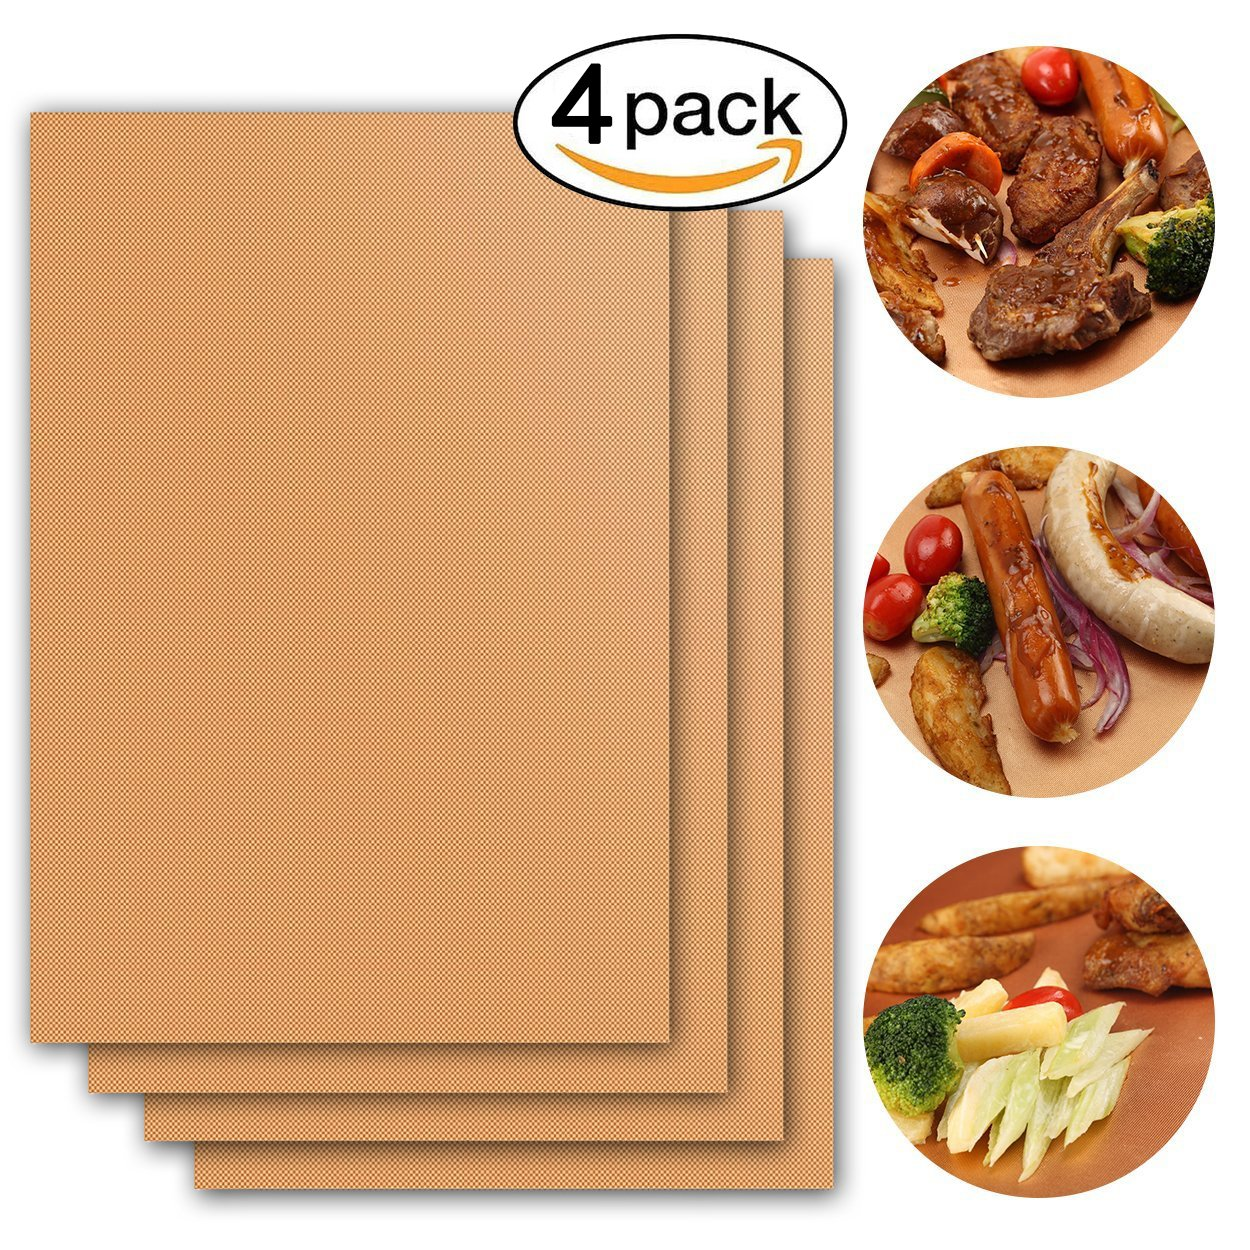 Copper BBQ Grill Mat & Baking Mats Set of 3 - Non-Stick,Reusable,Heat Resistantand, Easy to Clean - Work on Gas, Charcoal, Oven and Electric Grills - 15.75 x 13 Inch Grasafety